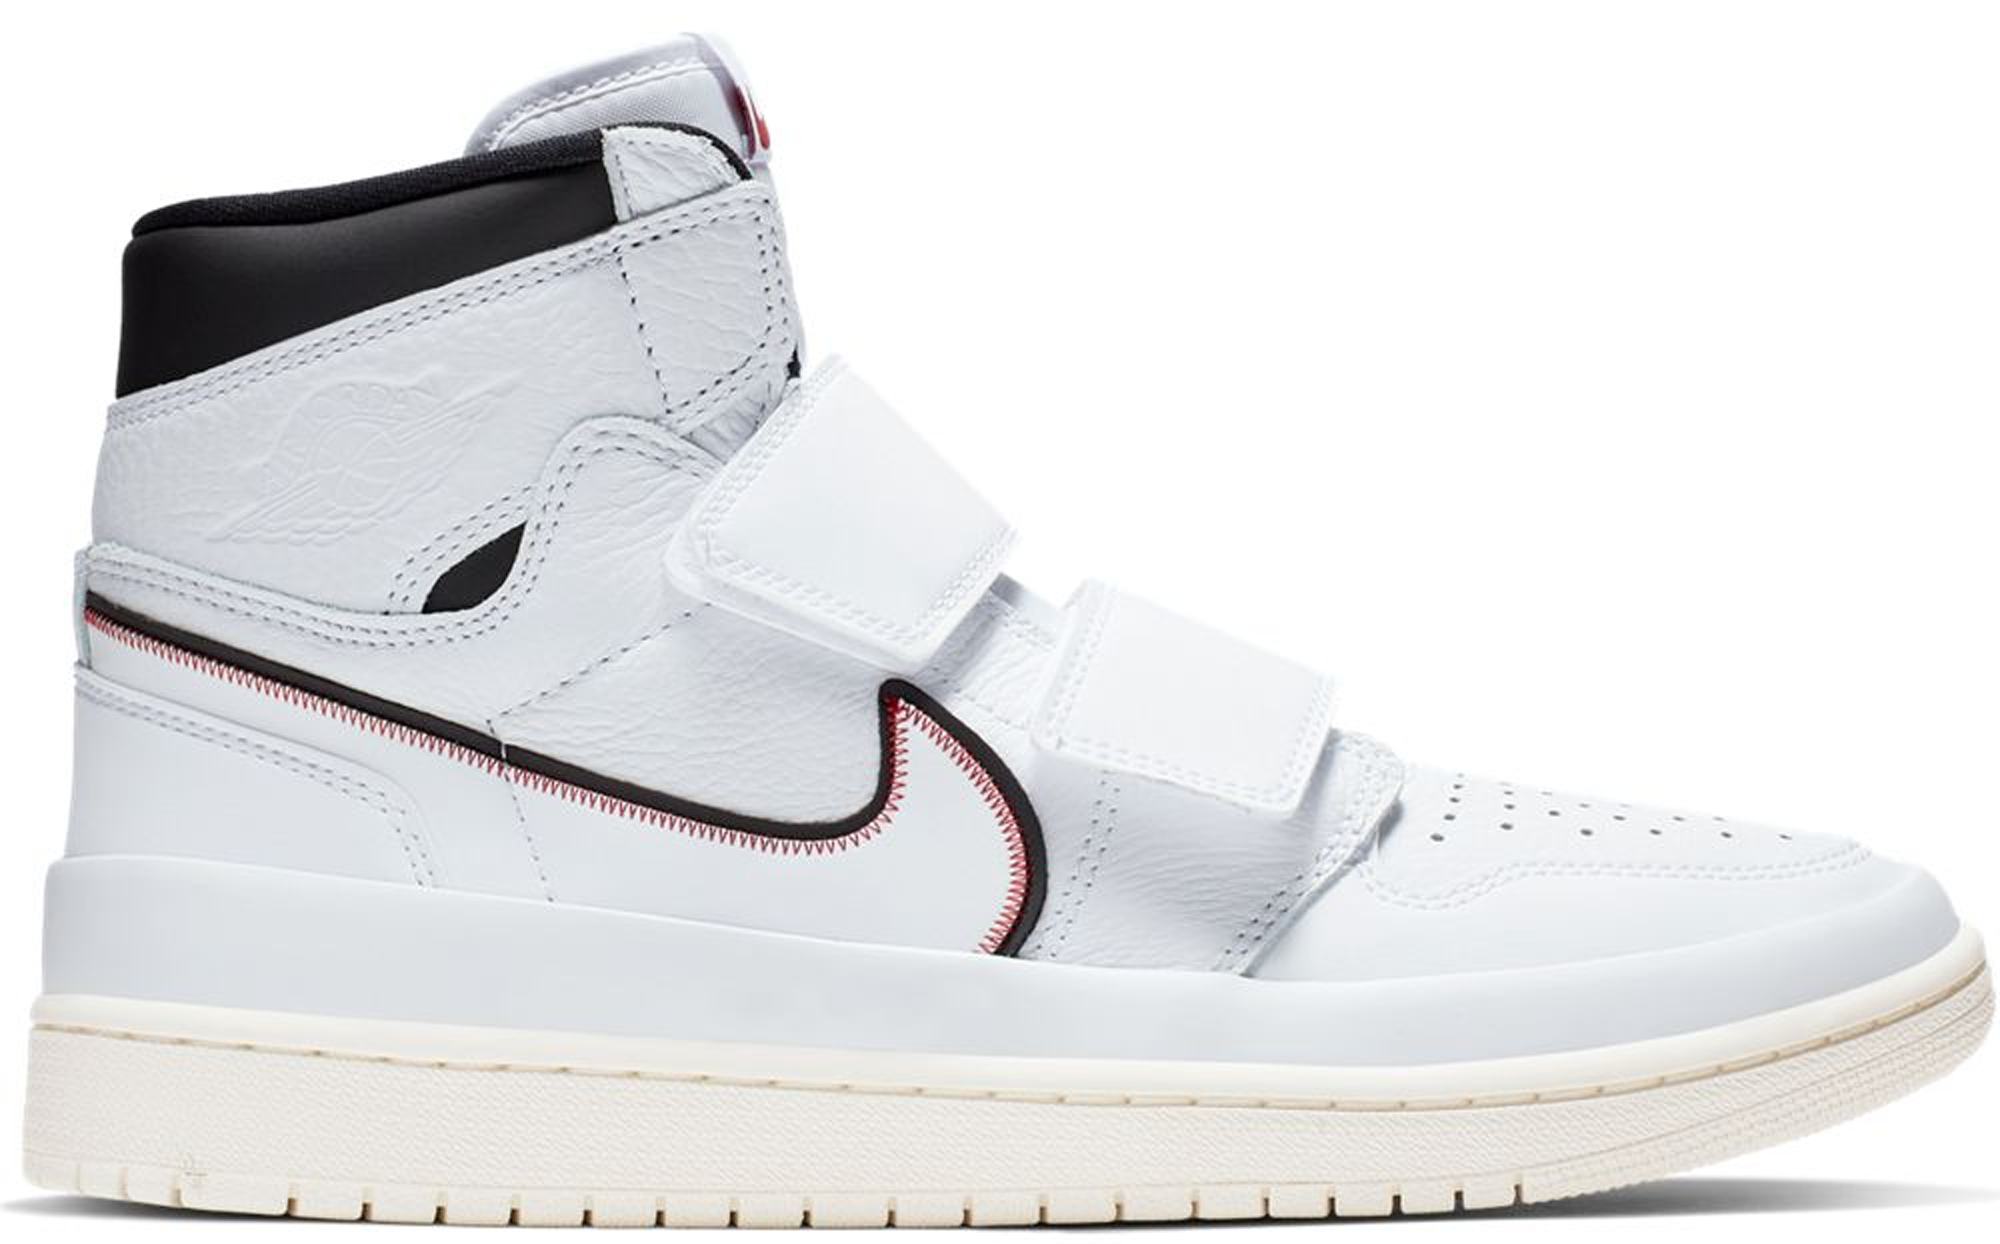 meet eeb97 a8b9d HypeAnalyzer · Jordan 1 Retro High Double Strap White Black Sail